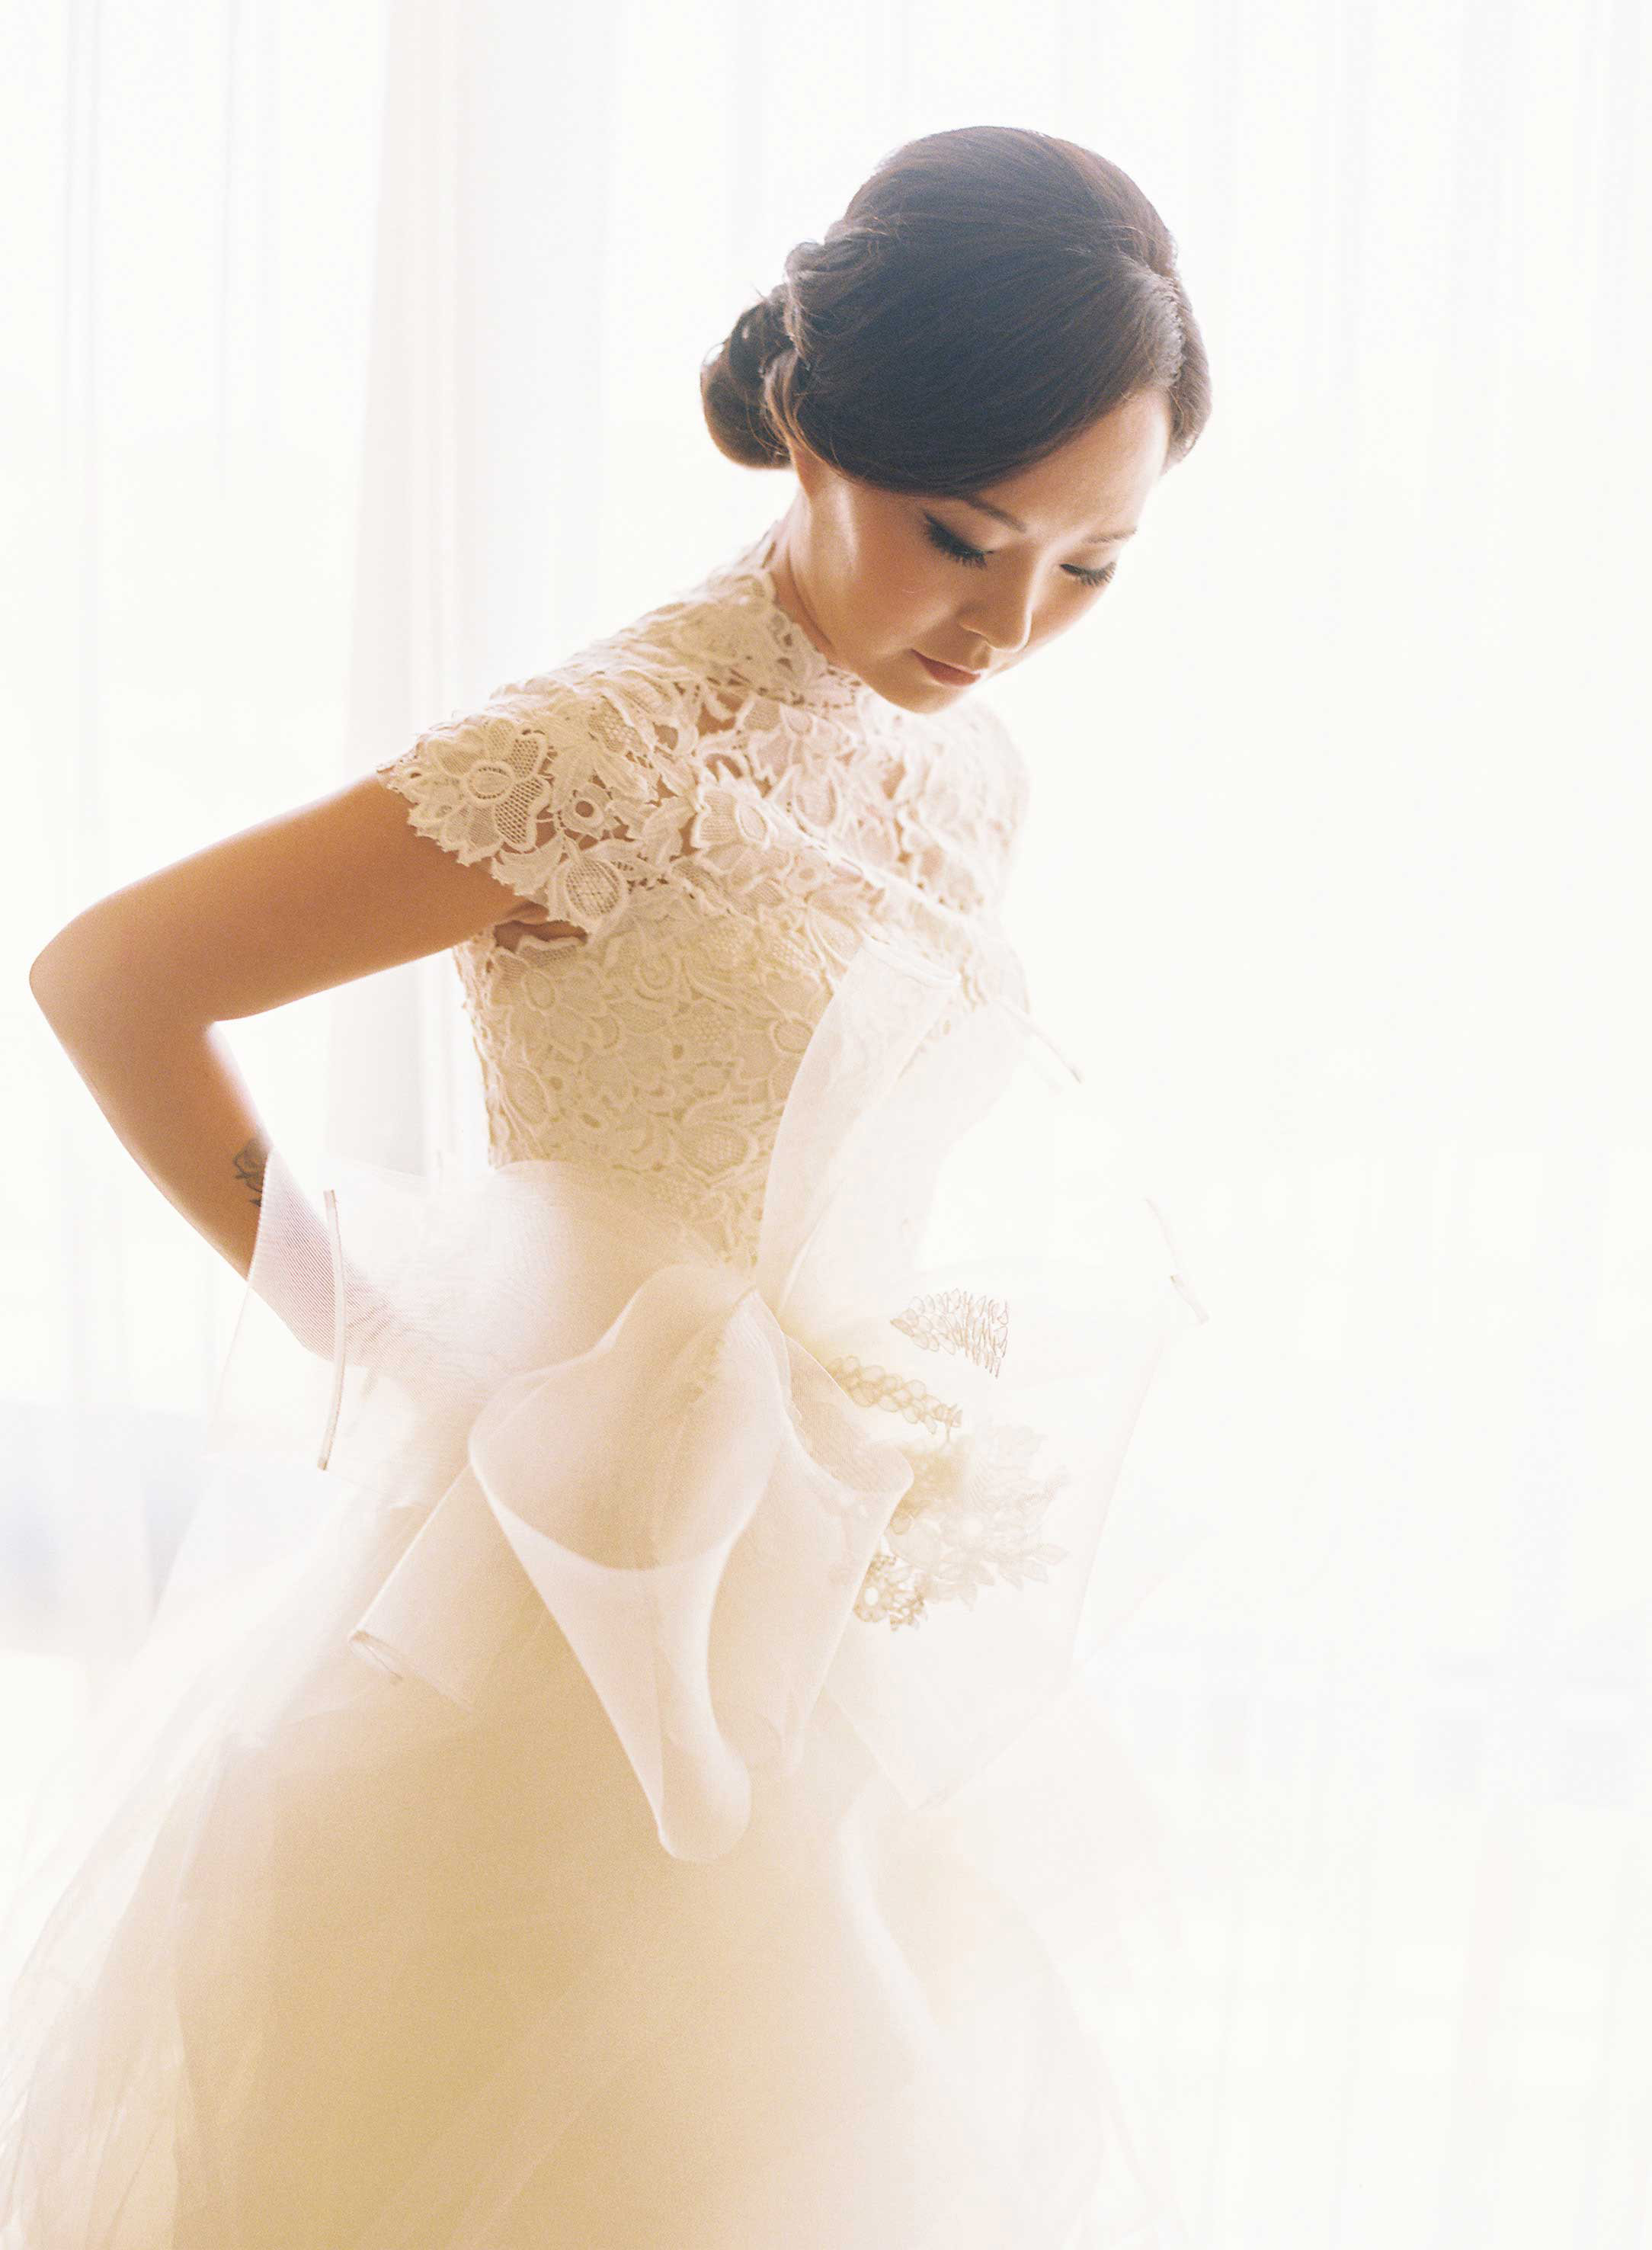 Asian American bride in wedding dress with bow